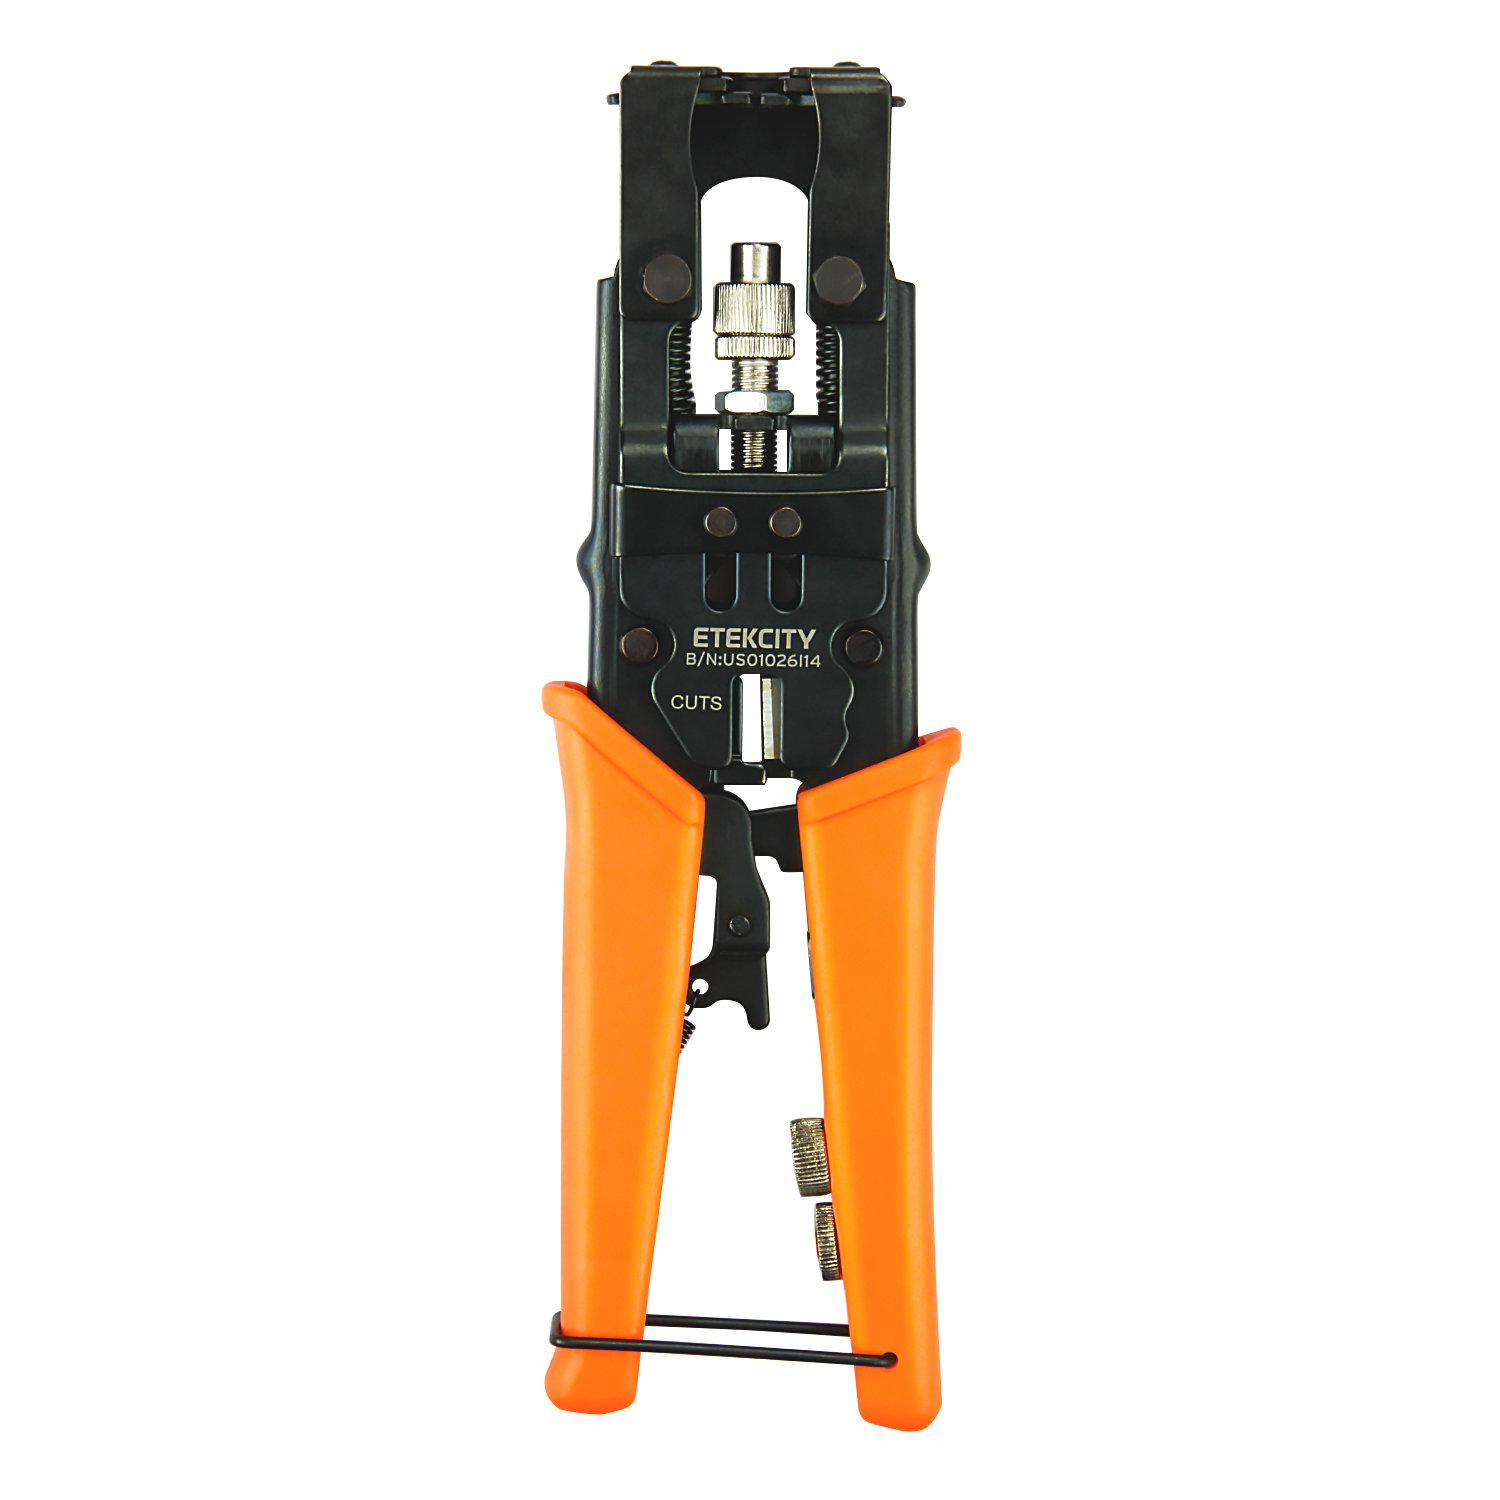 Etekcity Coax Cable Crimper, Multifunctional Compression Connector Adjustable Deluxe Tool for F BNC RCA, RG58 RG59 RG6, Universal Wire Cutters by Etekcity